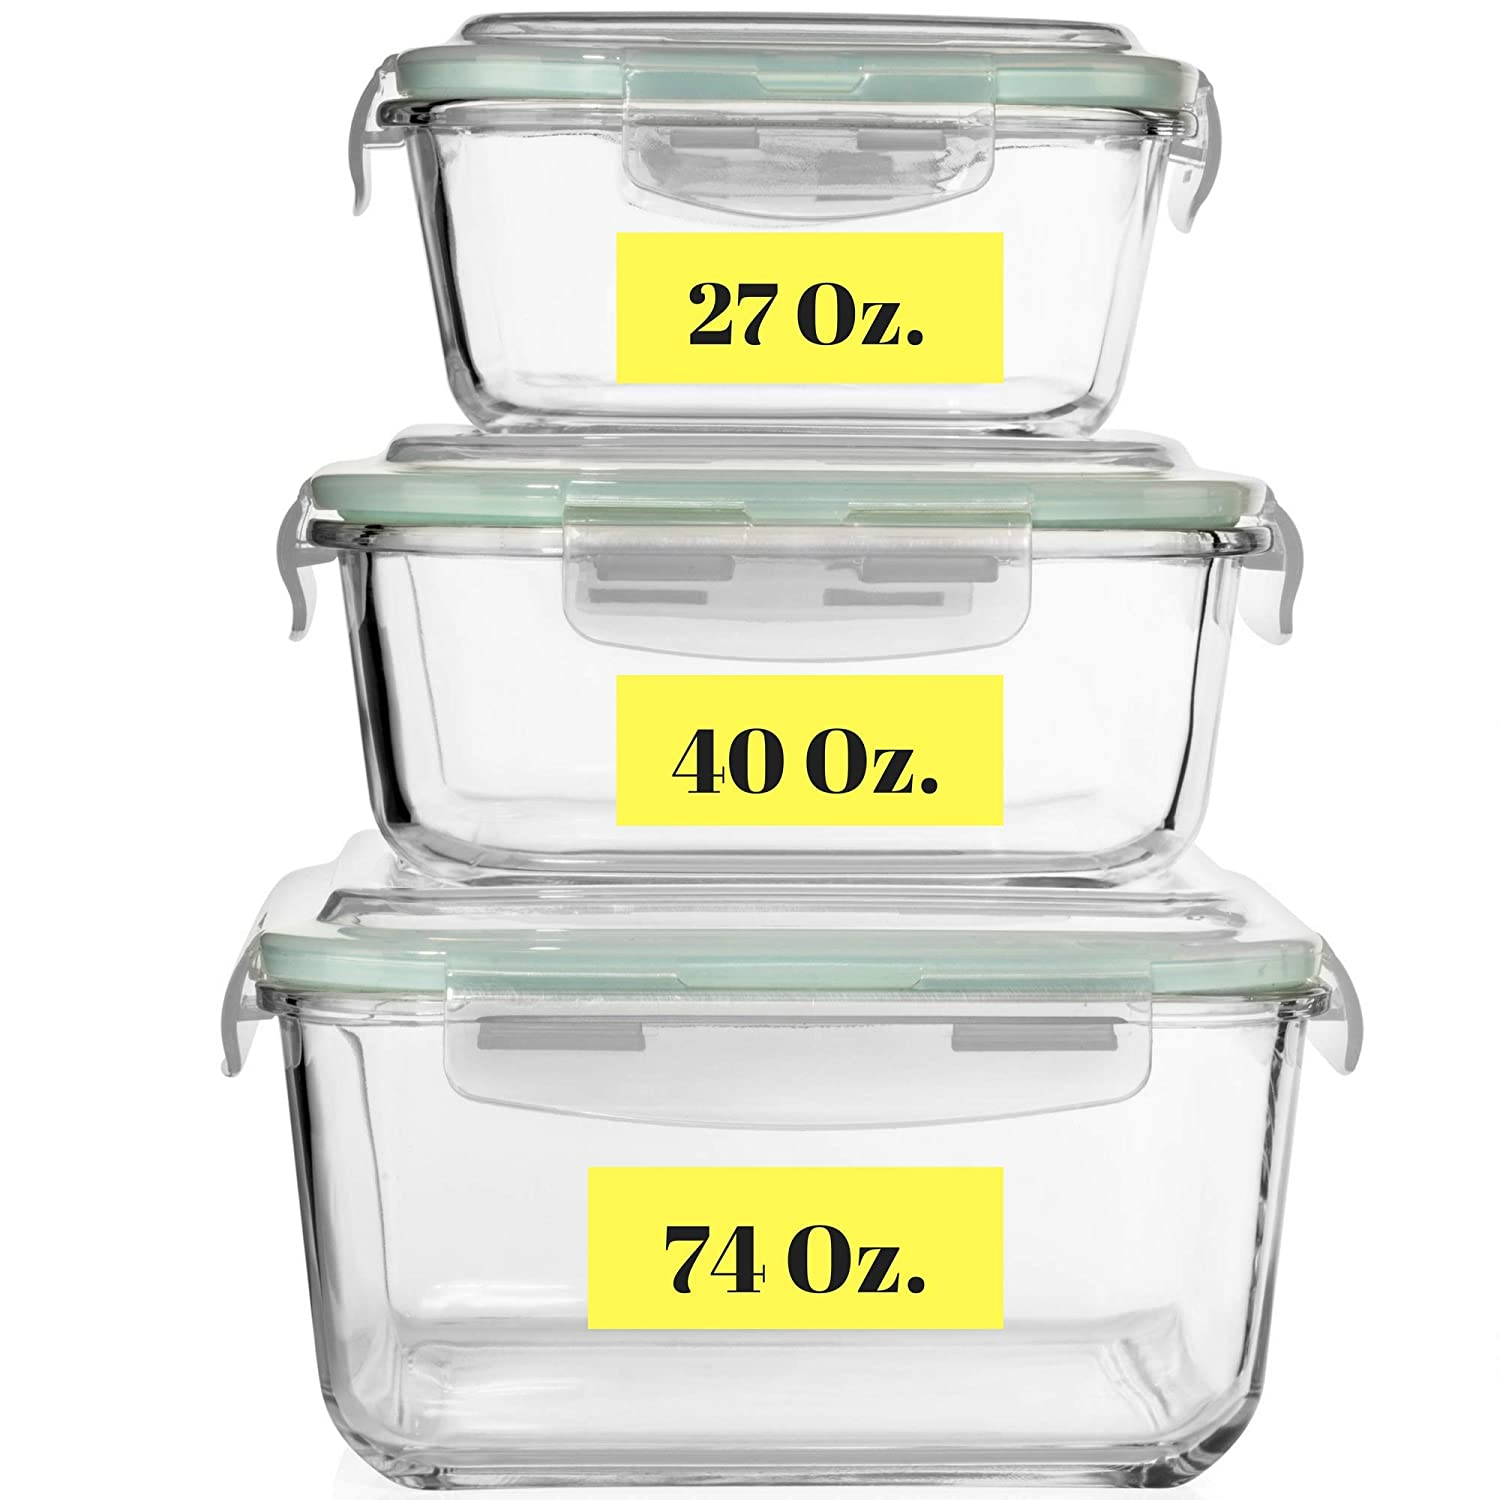 Extra Large Glass Food Storage Containers With Airtight Lid  Containers With Lids Microwave Oven Freezer Dishwasher Safe